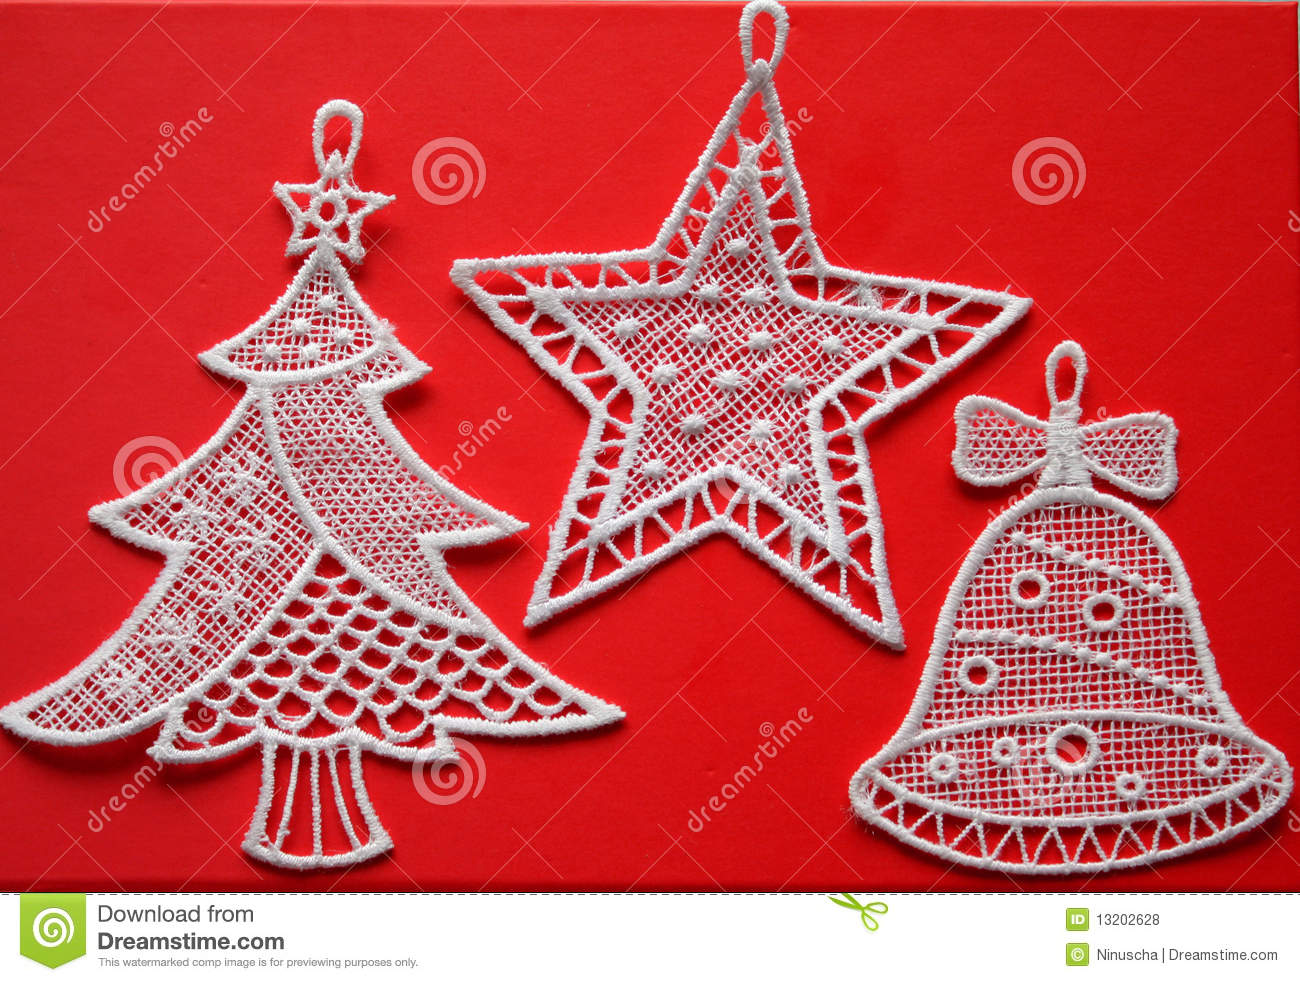 download unusual christmas fabric decorations stock photo image of sweet bell 13202628 - Unusual Christmas Decorations